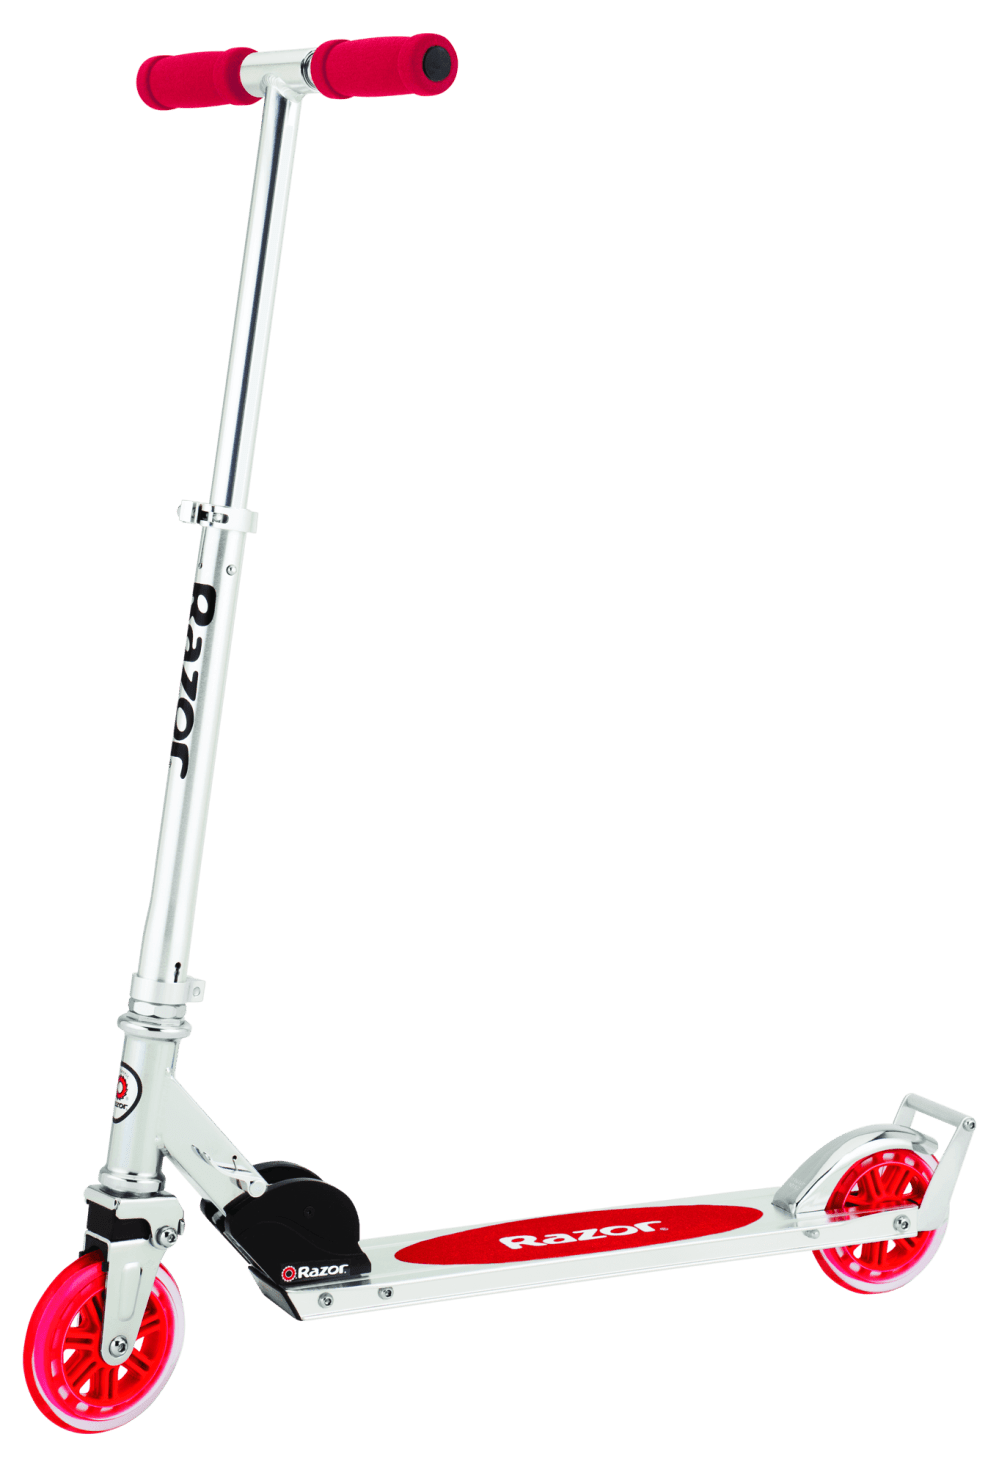 medium resolution of a3 scooter ages 5 and up